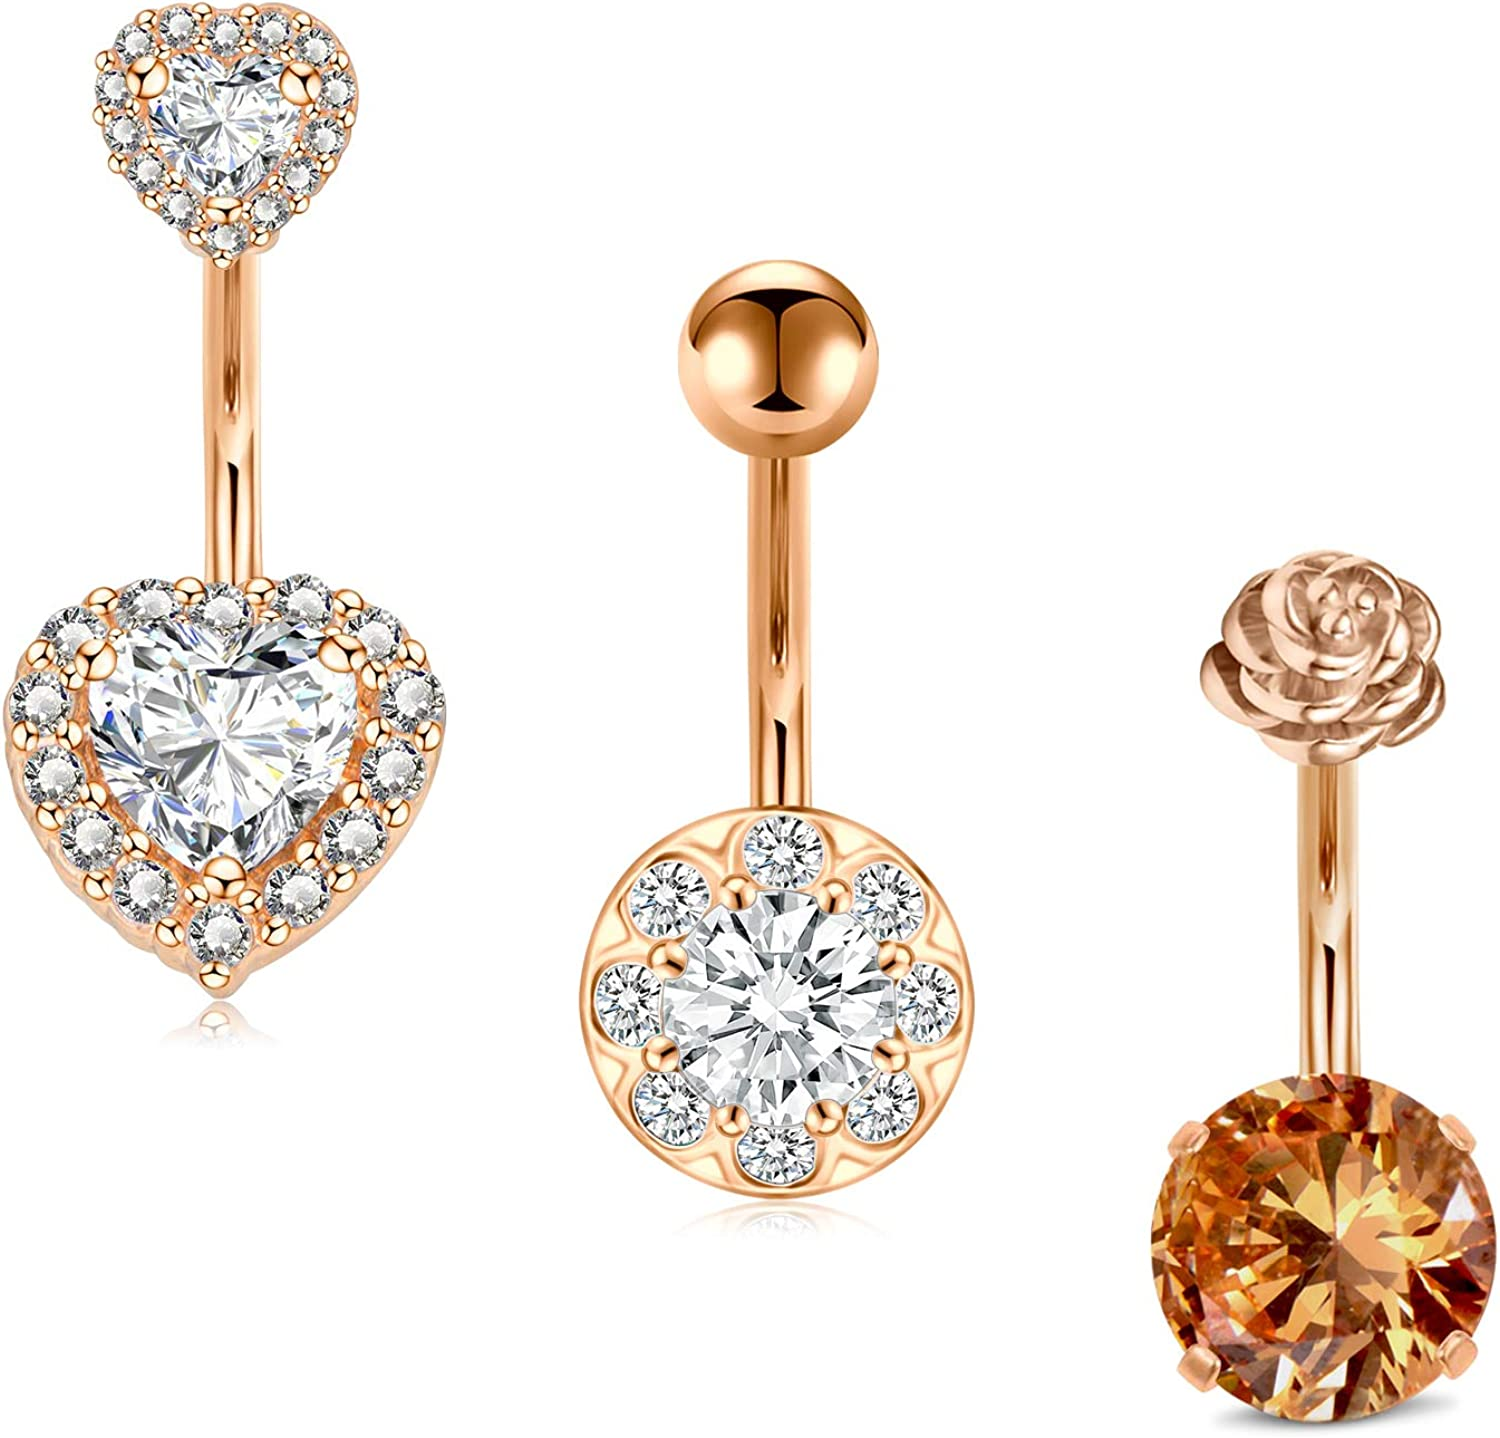 JFORYOU Belly Button Rings 14G 3Pcs Surgical Stainless Navel Belly Ring Cubic Zirconia Heart Navel Curved Barbell Rose Flower Top Style